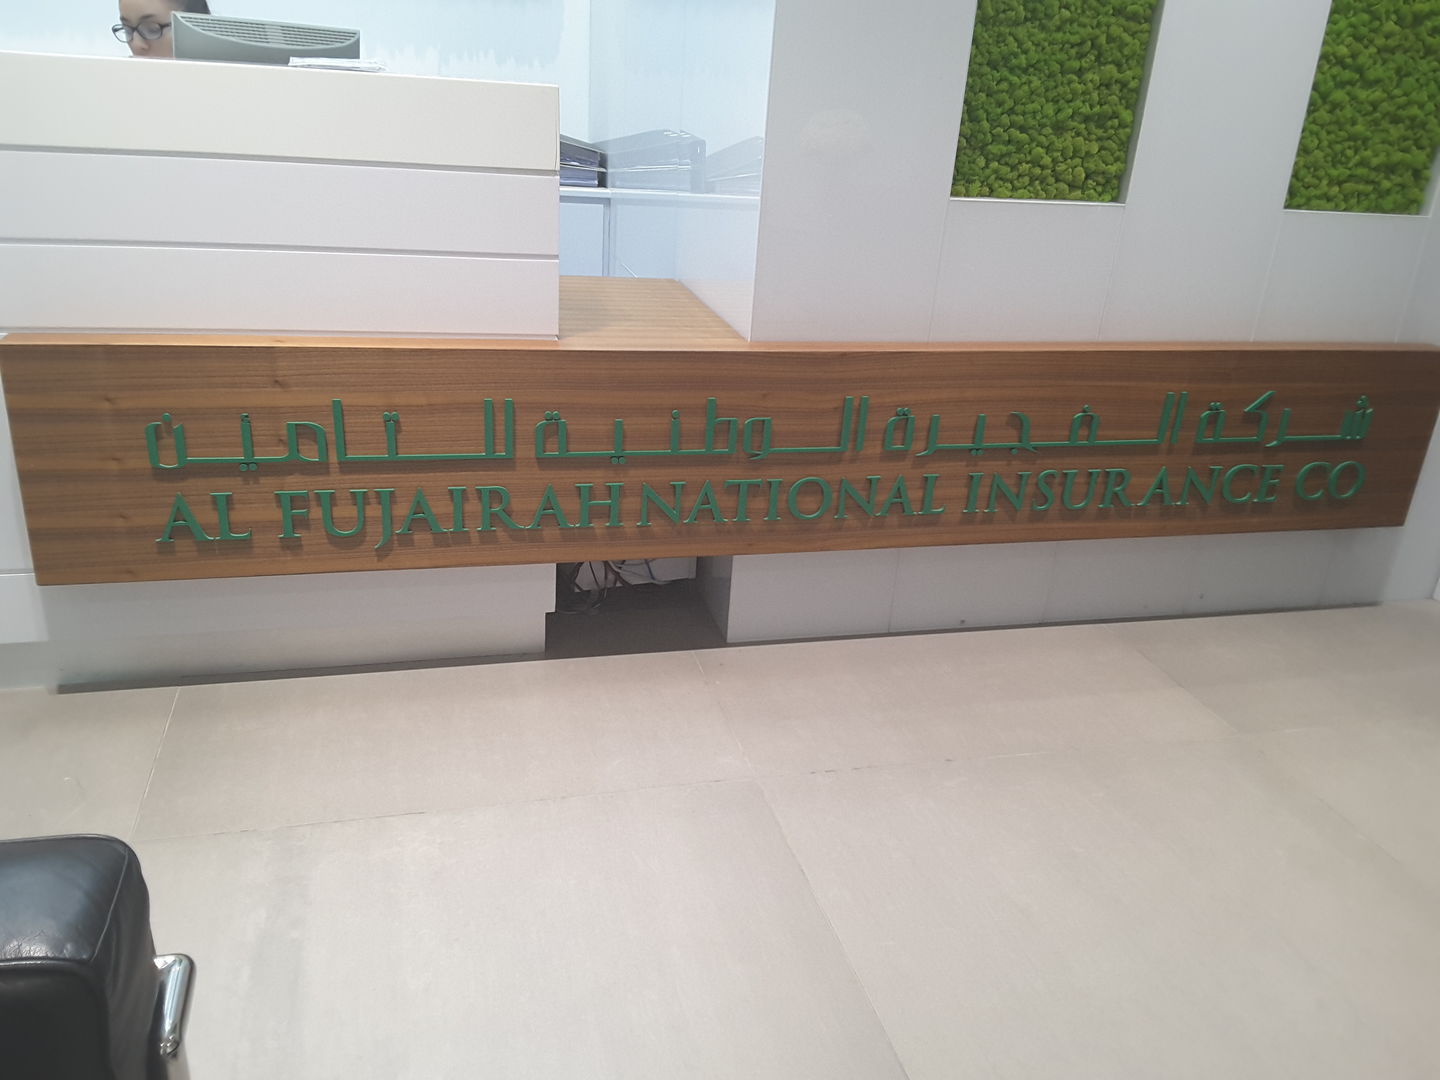 HiDubai-business-al-fujairah-national-insurance-company-finance-legal-insurance-warranty-business-bay-dubai-3